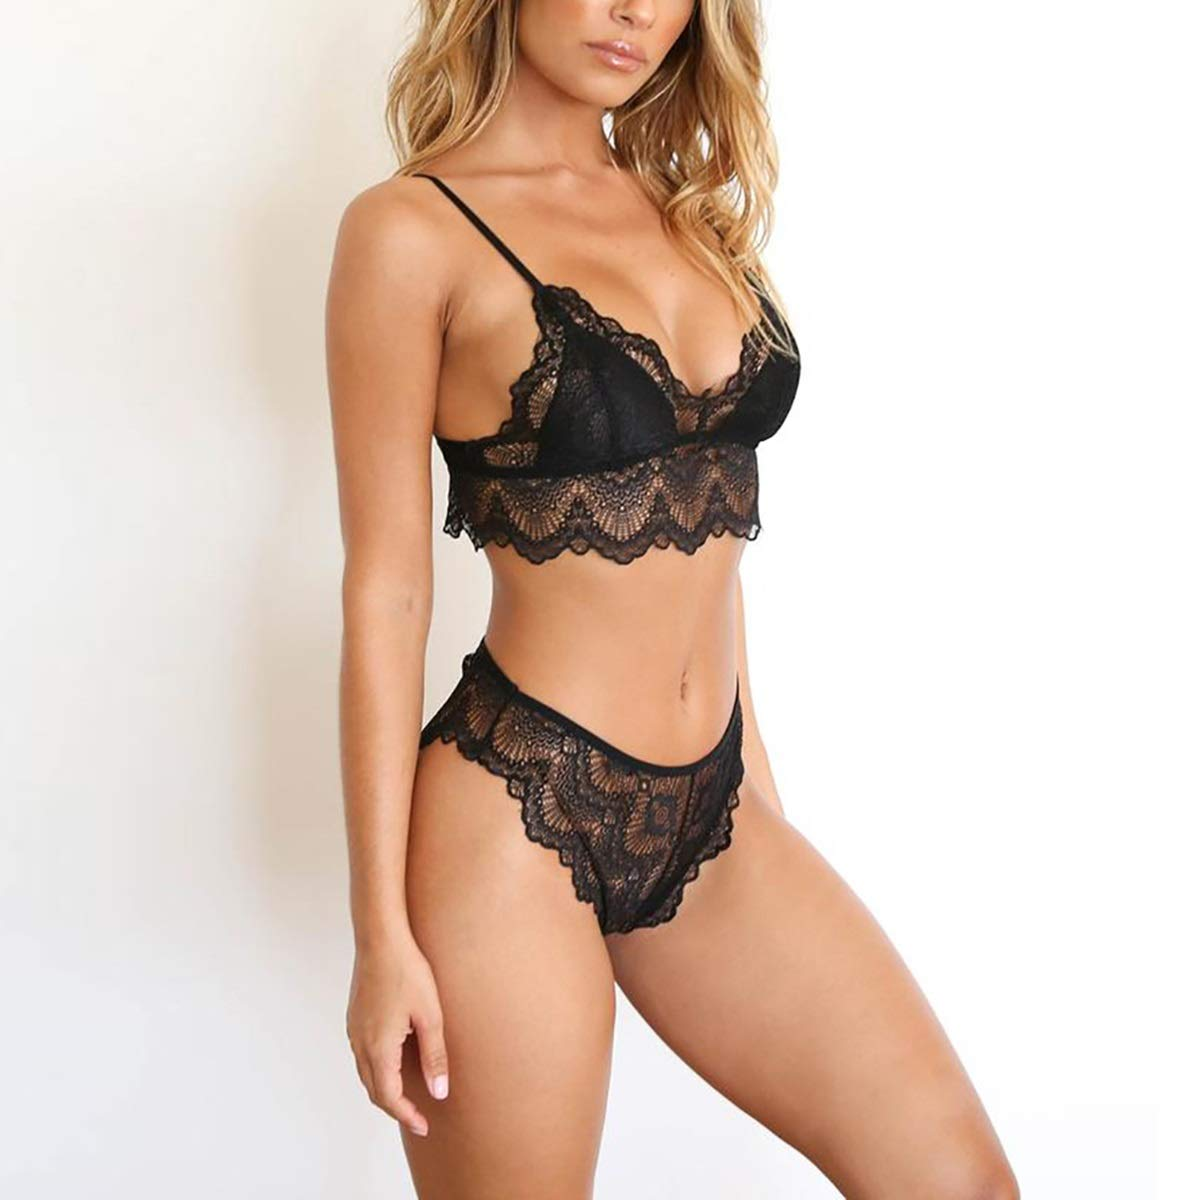 XingYue Direct Donna Completo Intimo